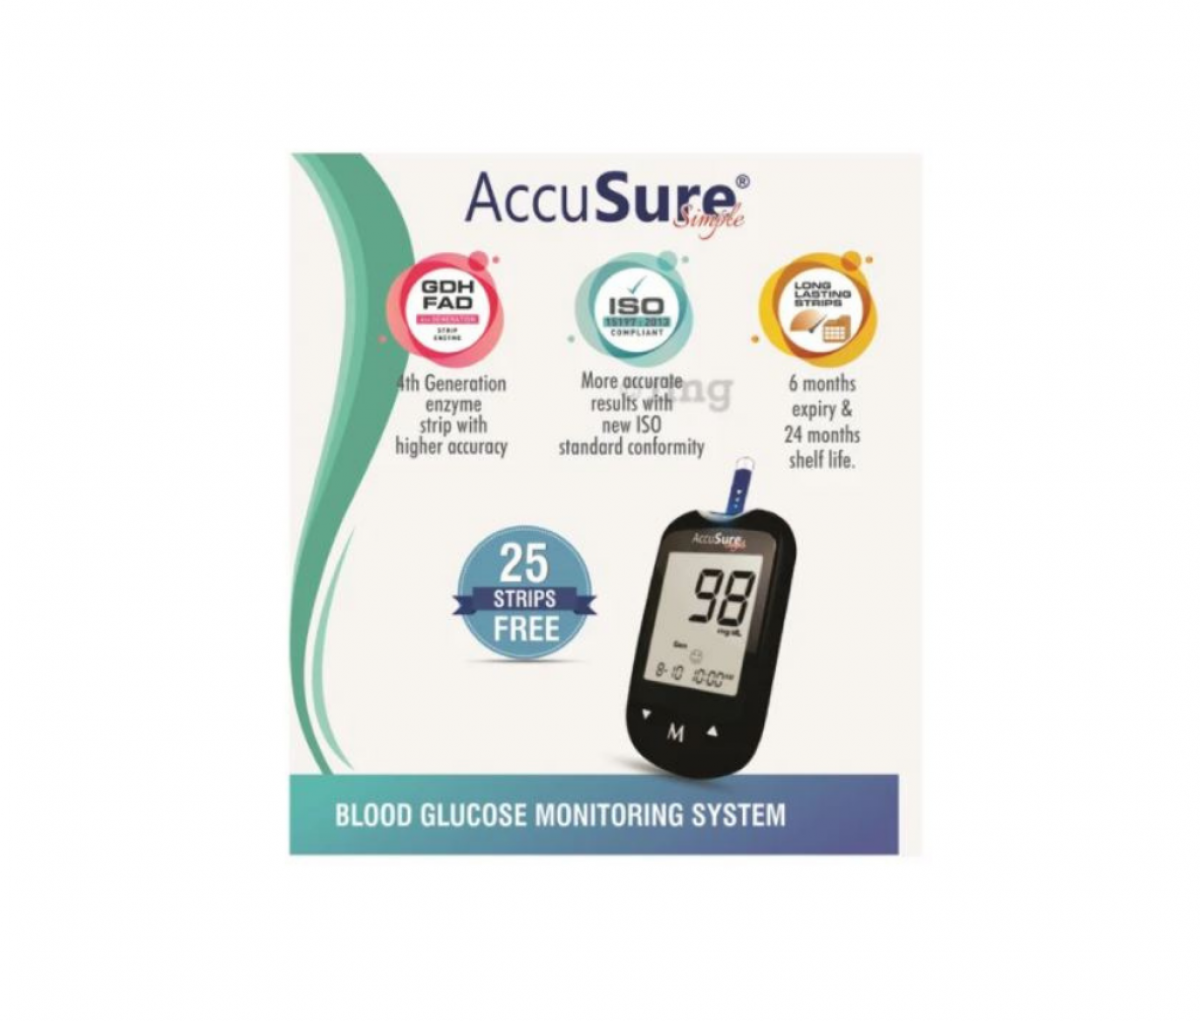 AccuSure Simple 4th Generation Blood Glucose Monitoring System